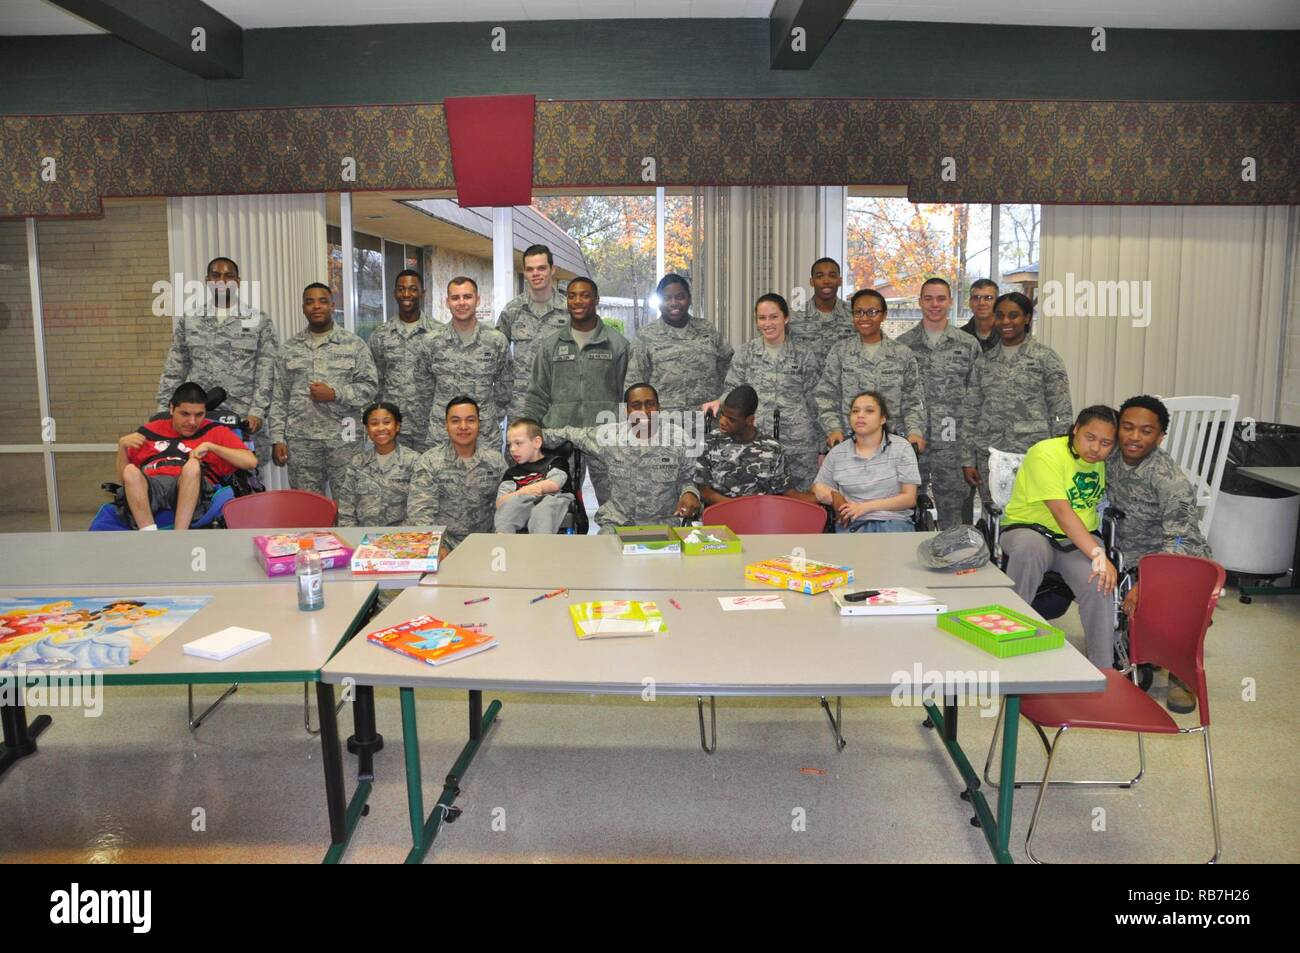 Sixteen Airmen from the 908th Airlift Wing's Airmen